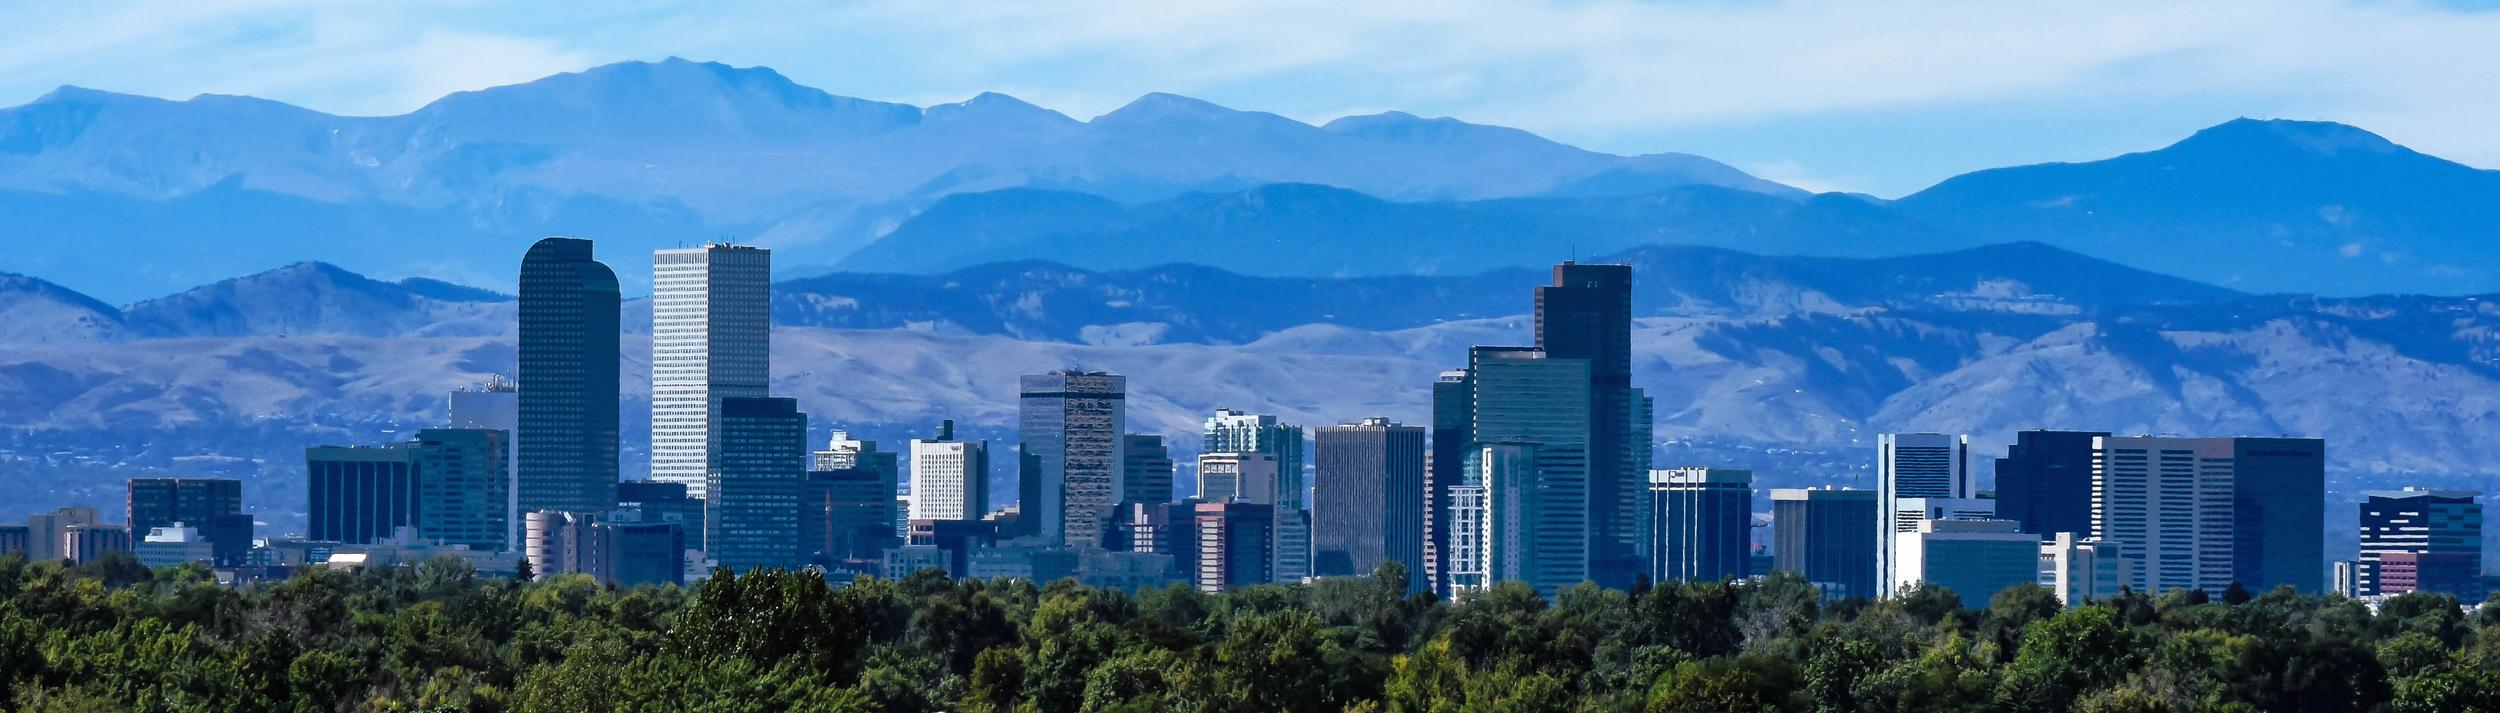 A day in denver the insiders guide blueprint presented by cbre malvernweather Choice Image